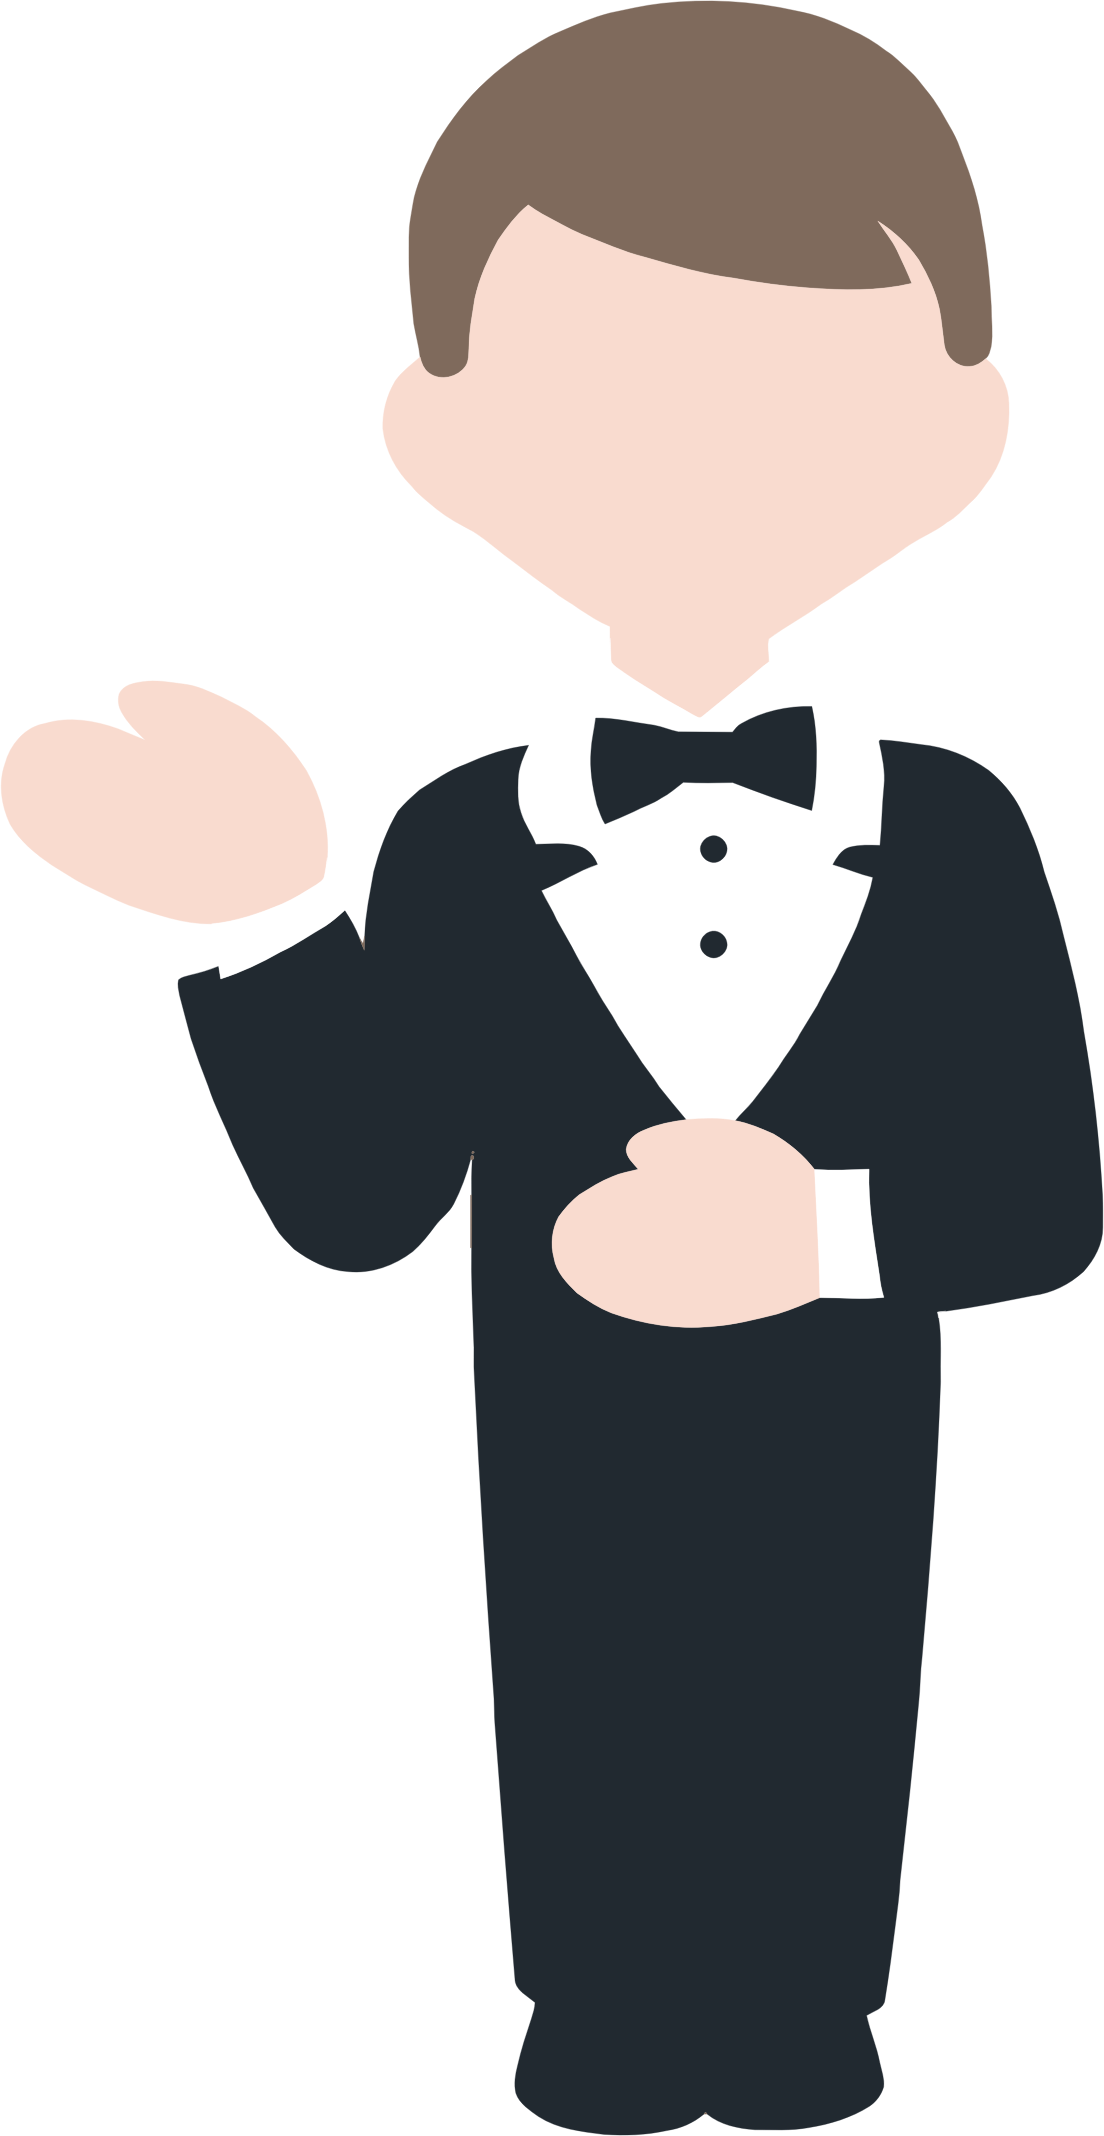 Butler clipart picture transparent Butler cartoon clipart images gallery for free download | MyReal ... picture transparent